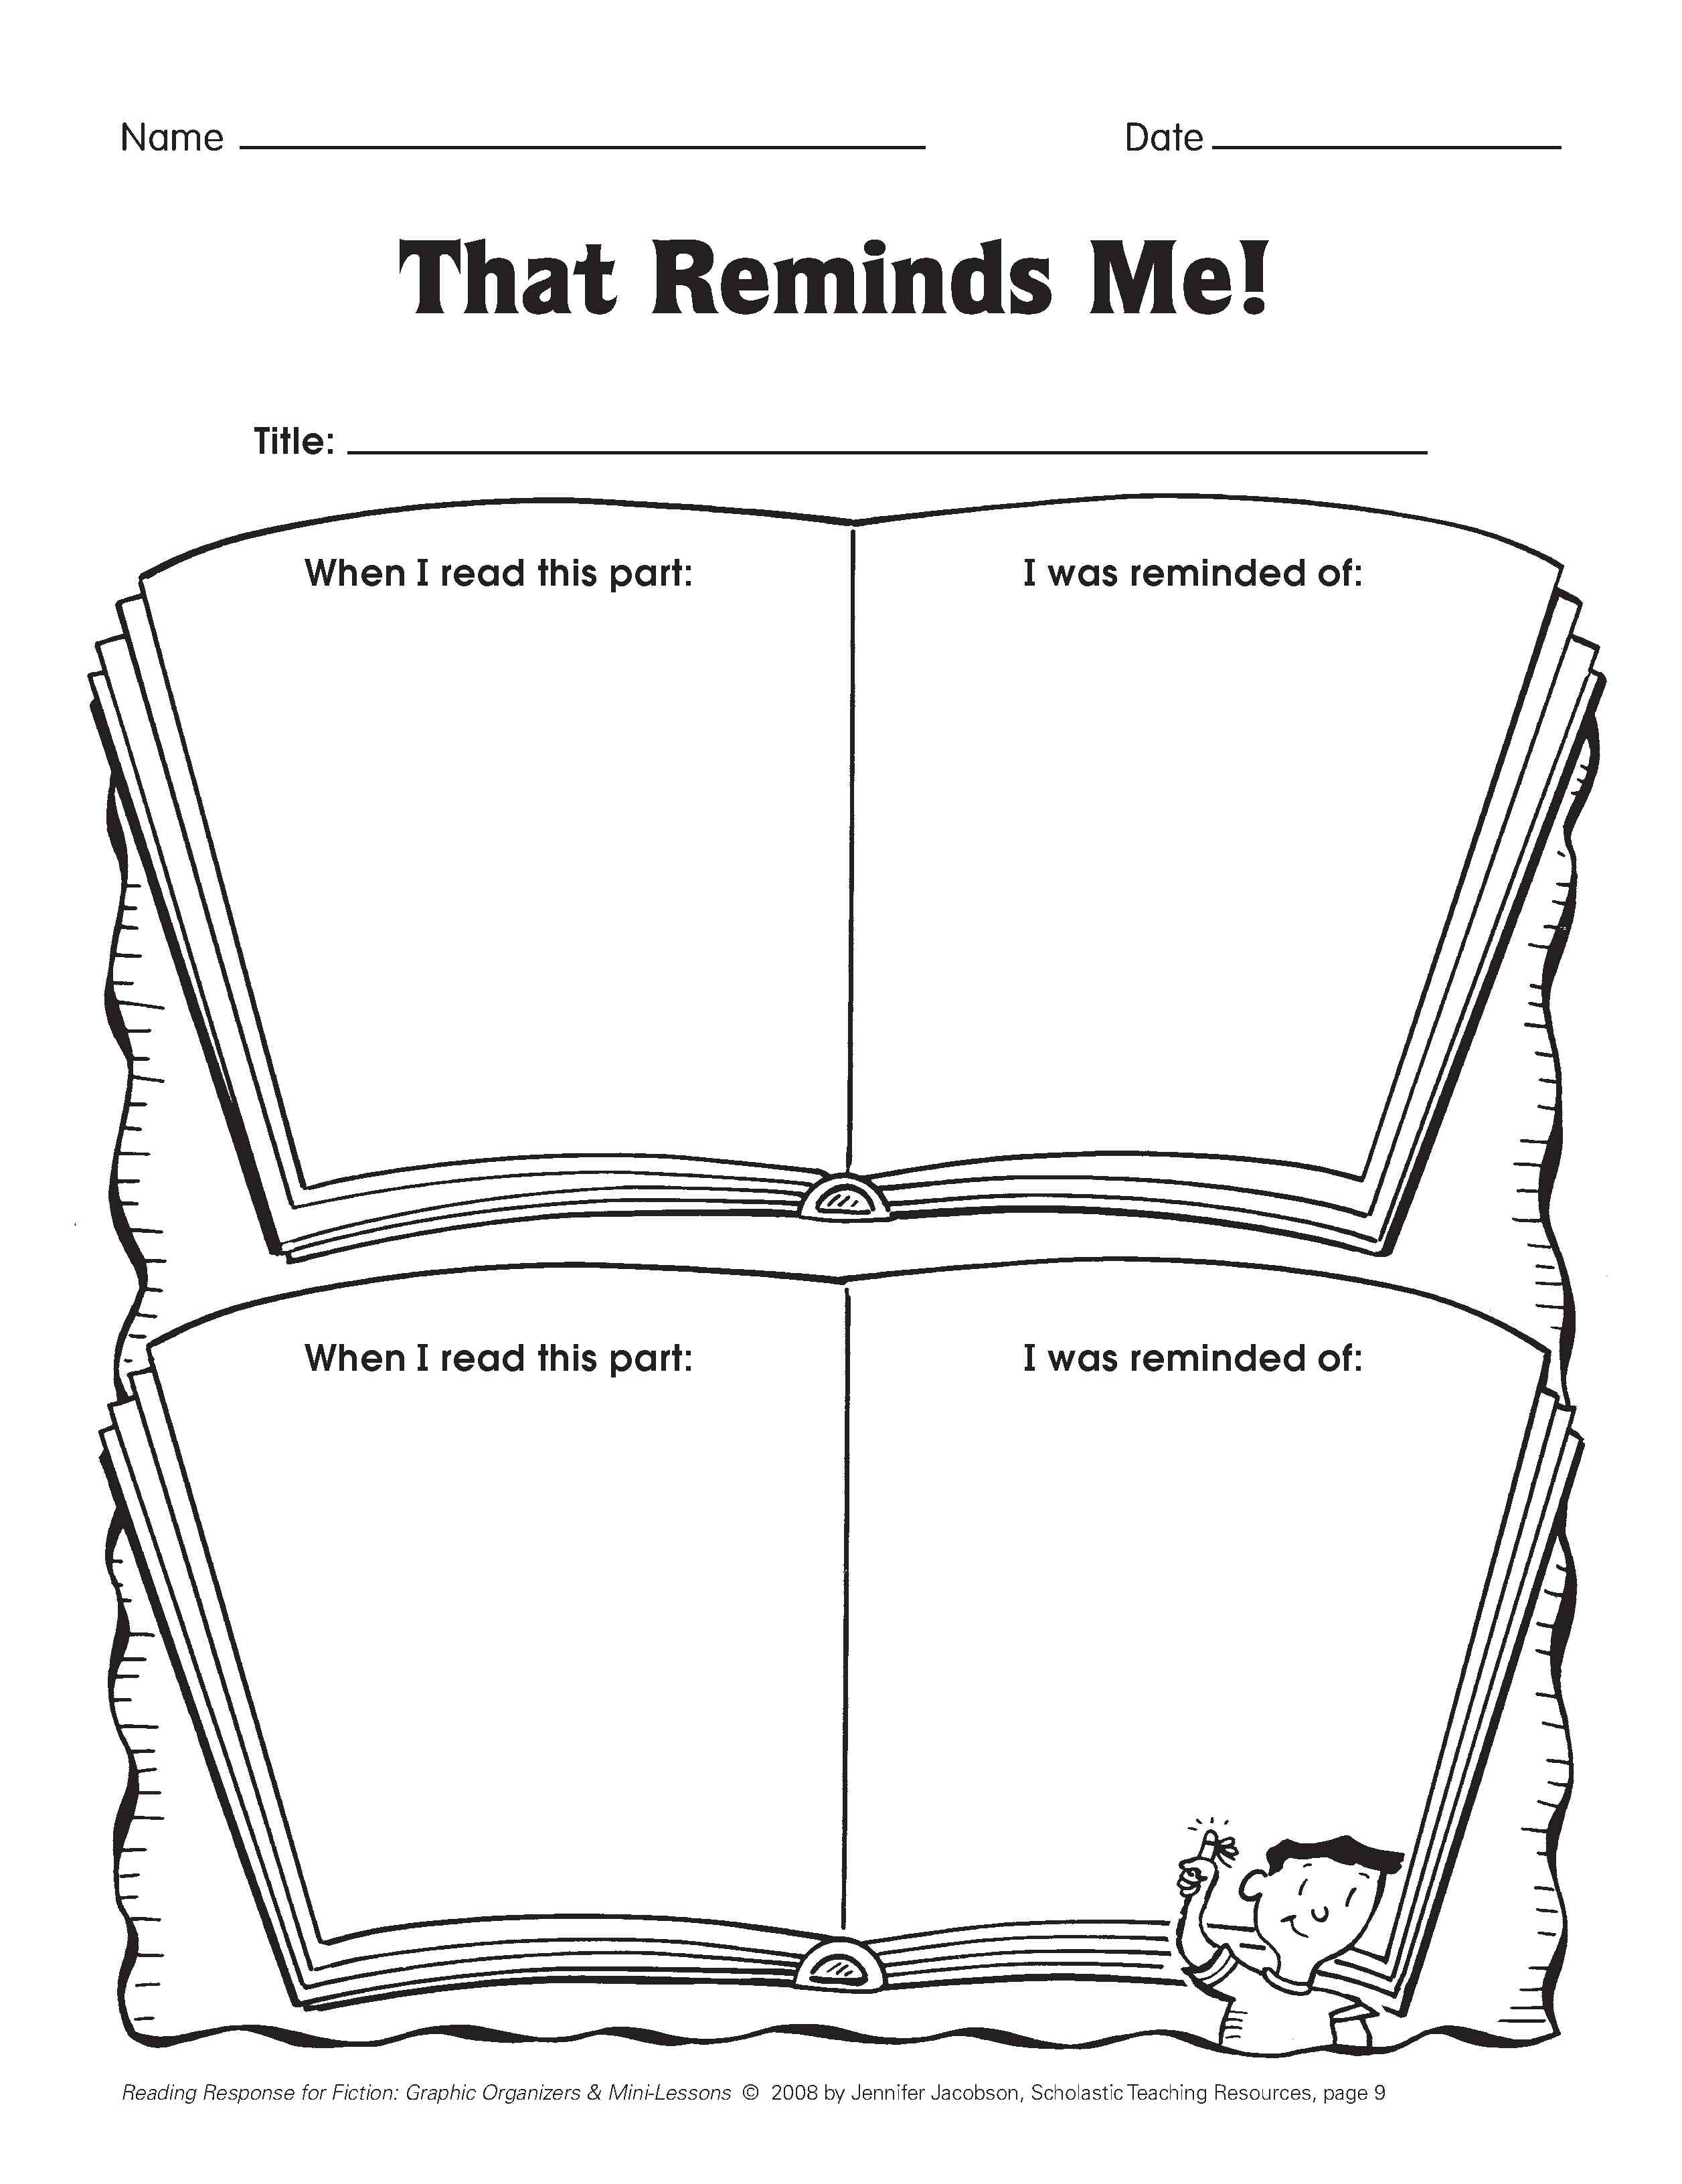 Book Jacket Graphic Organizer : Five minute reading responses scholastic